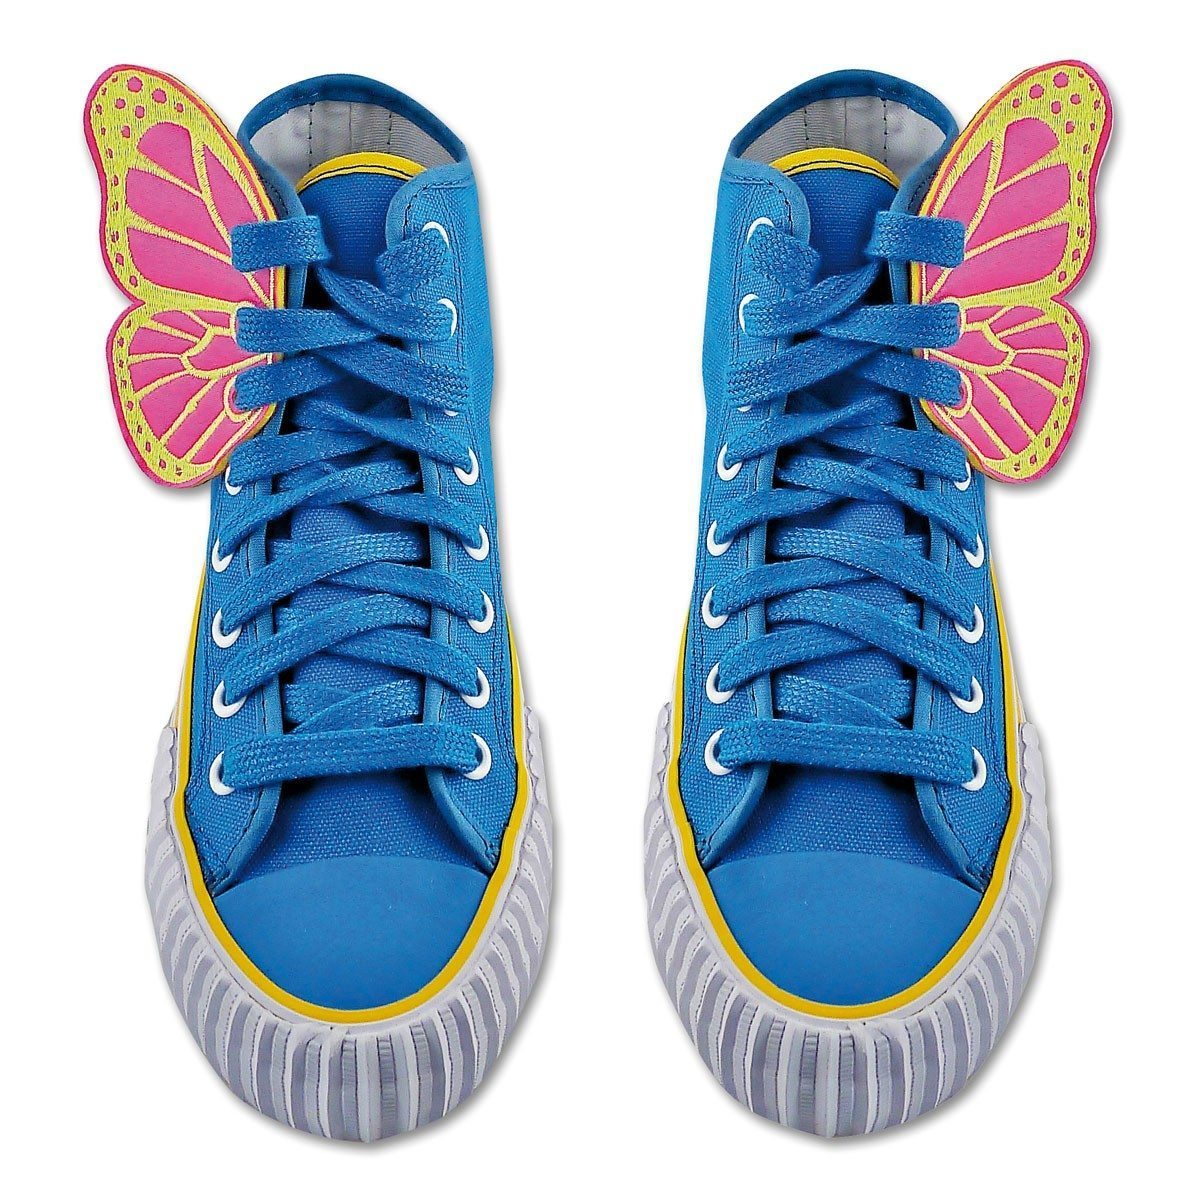 Ailes pour chaussures Shwings